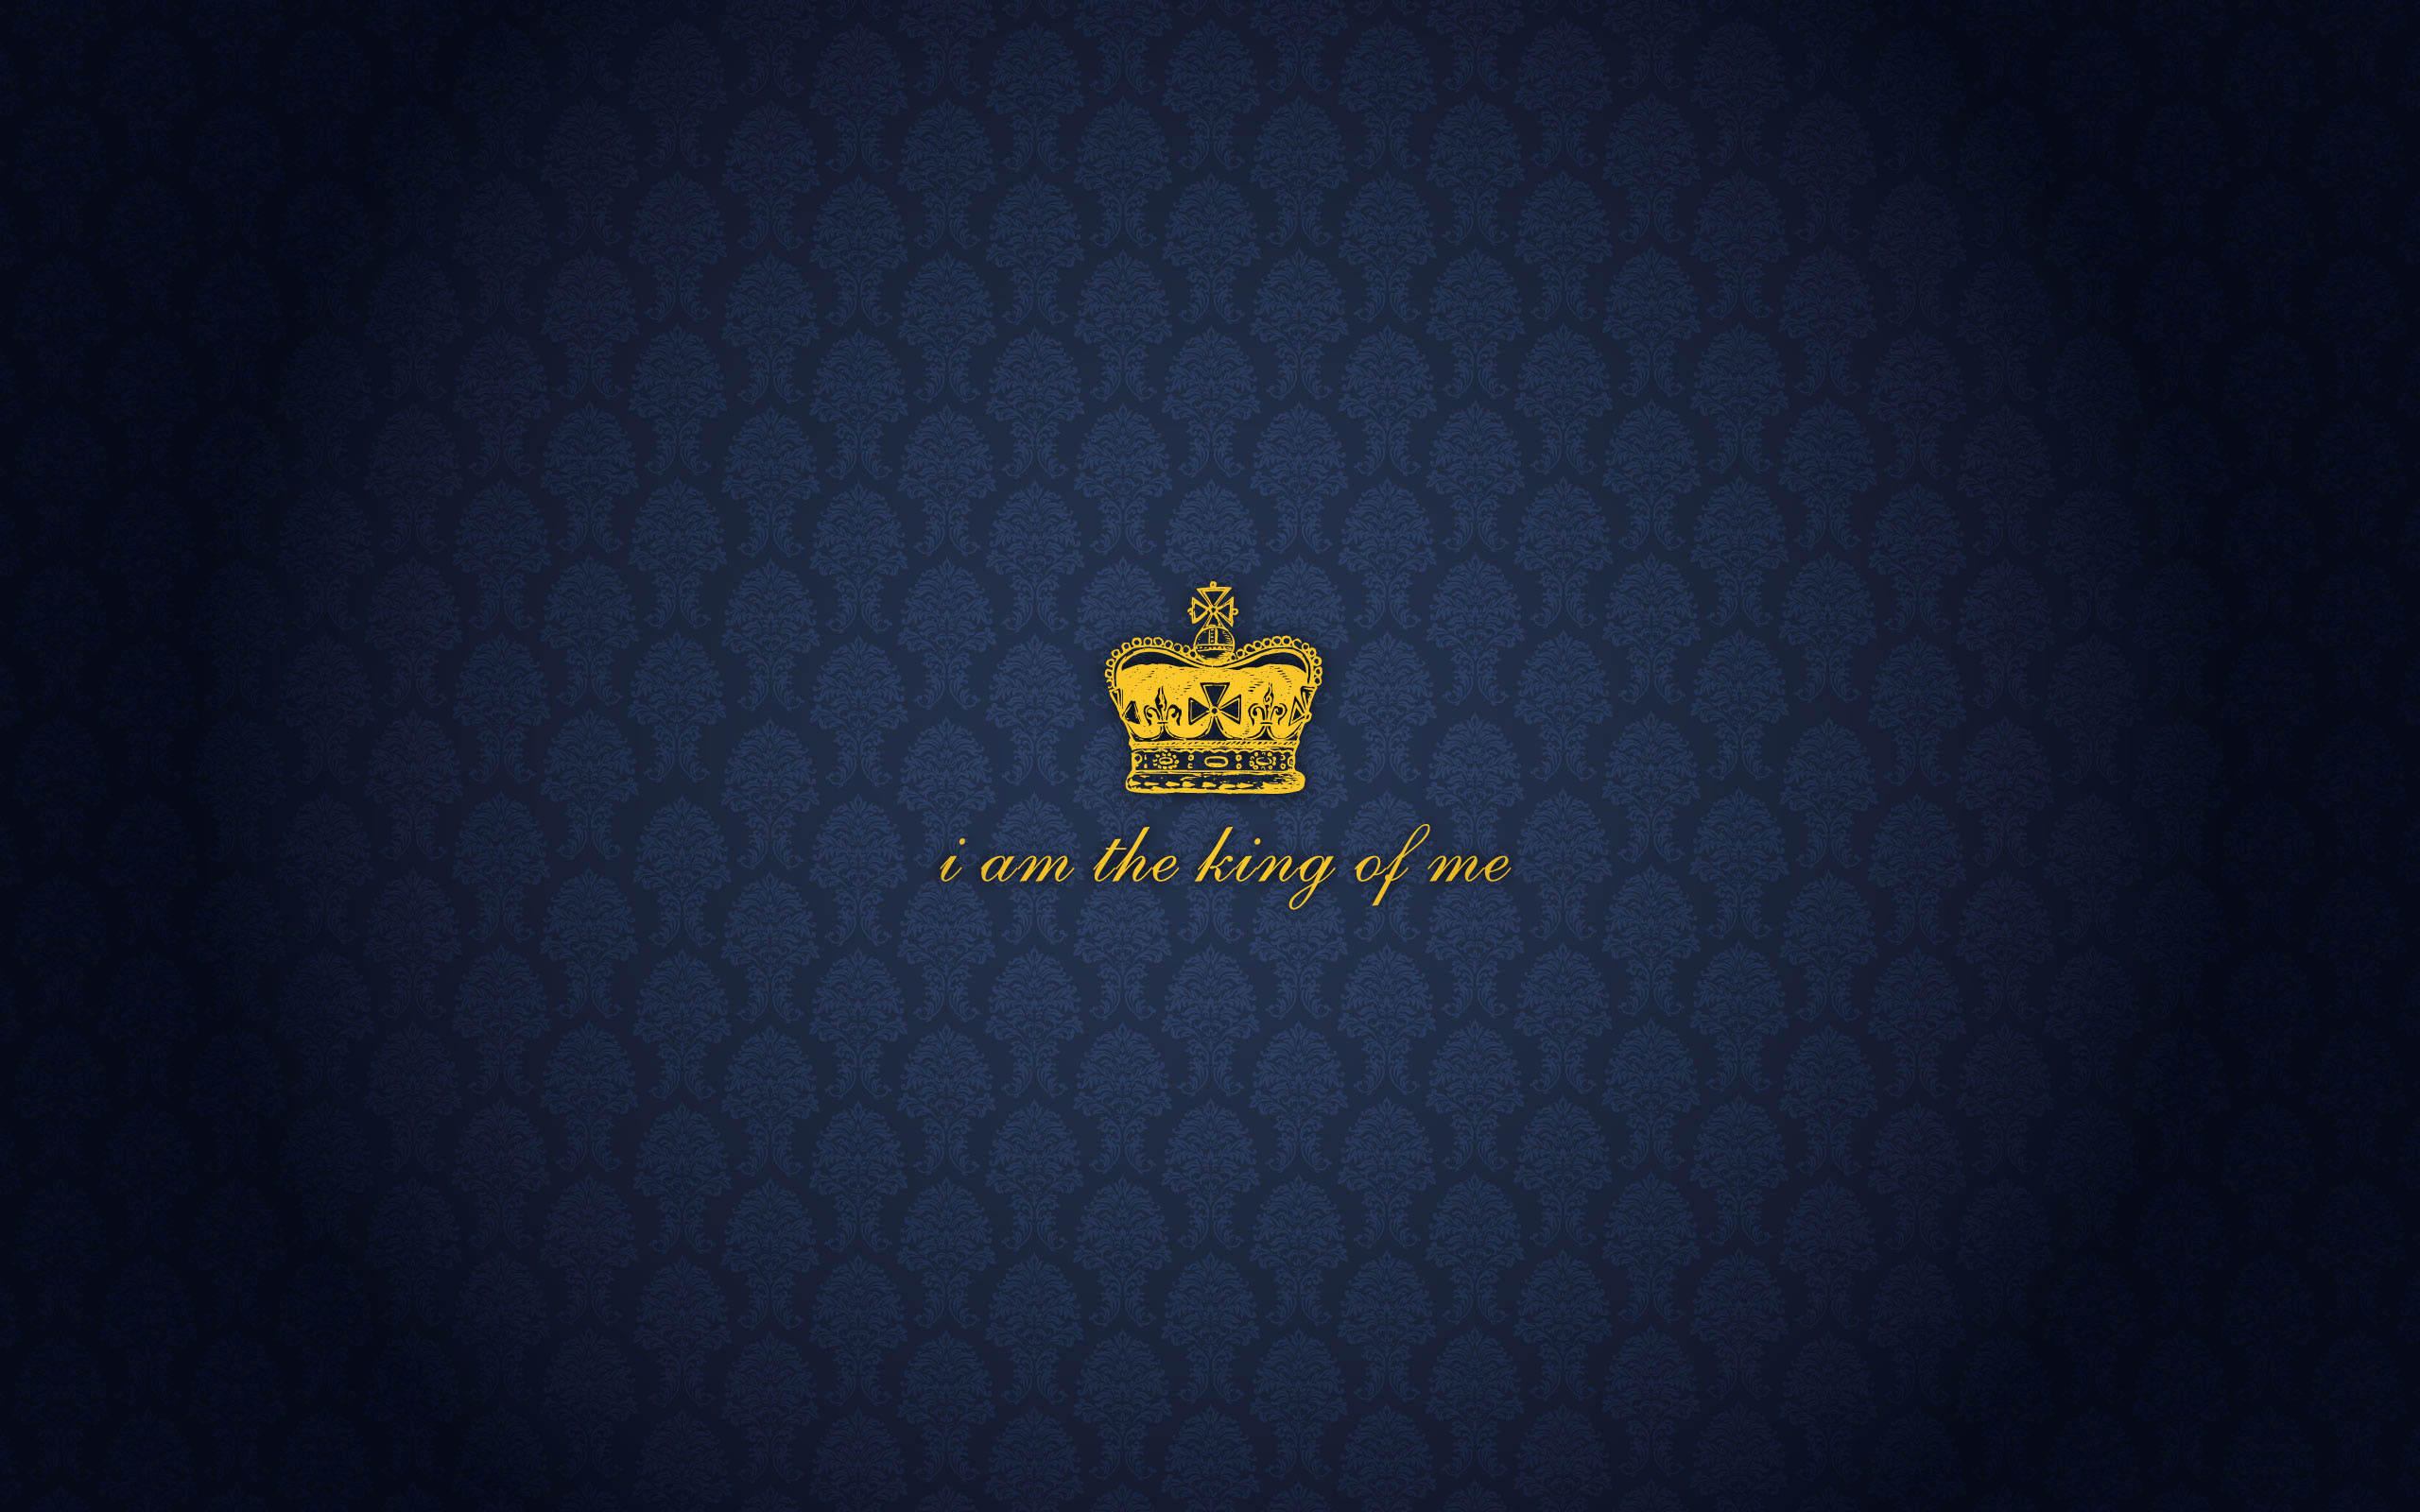 40+] Royal Wallpapers on WallpaperSafari